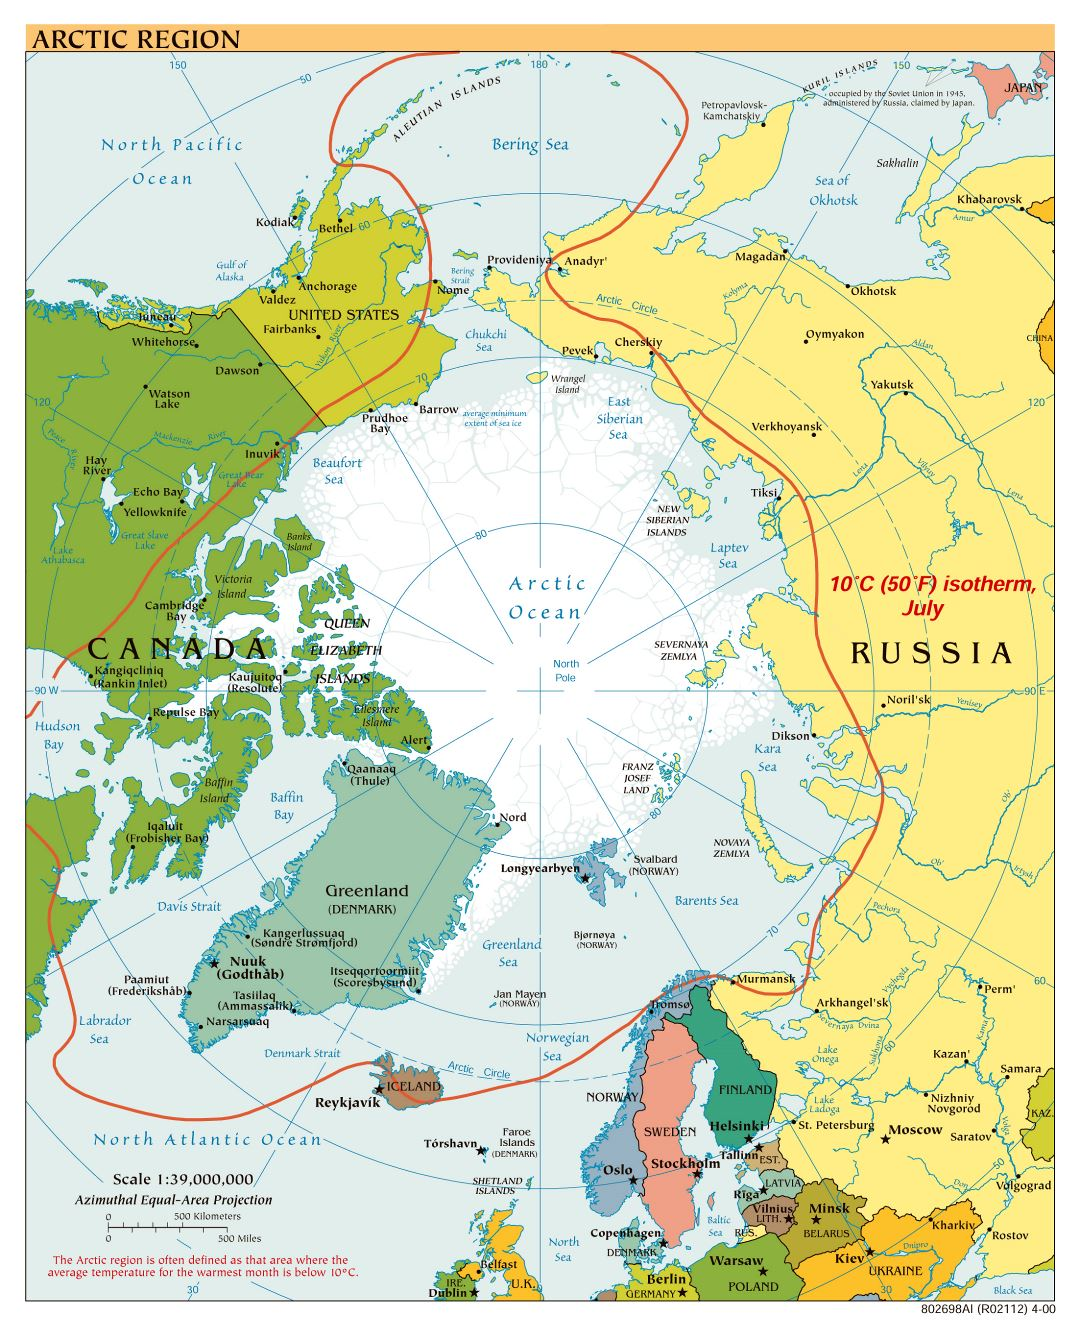 Large scale political map of Arctic Region - 2000